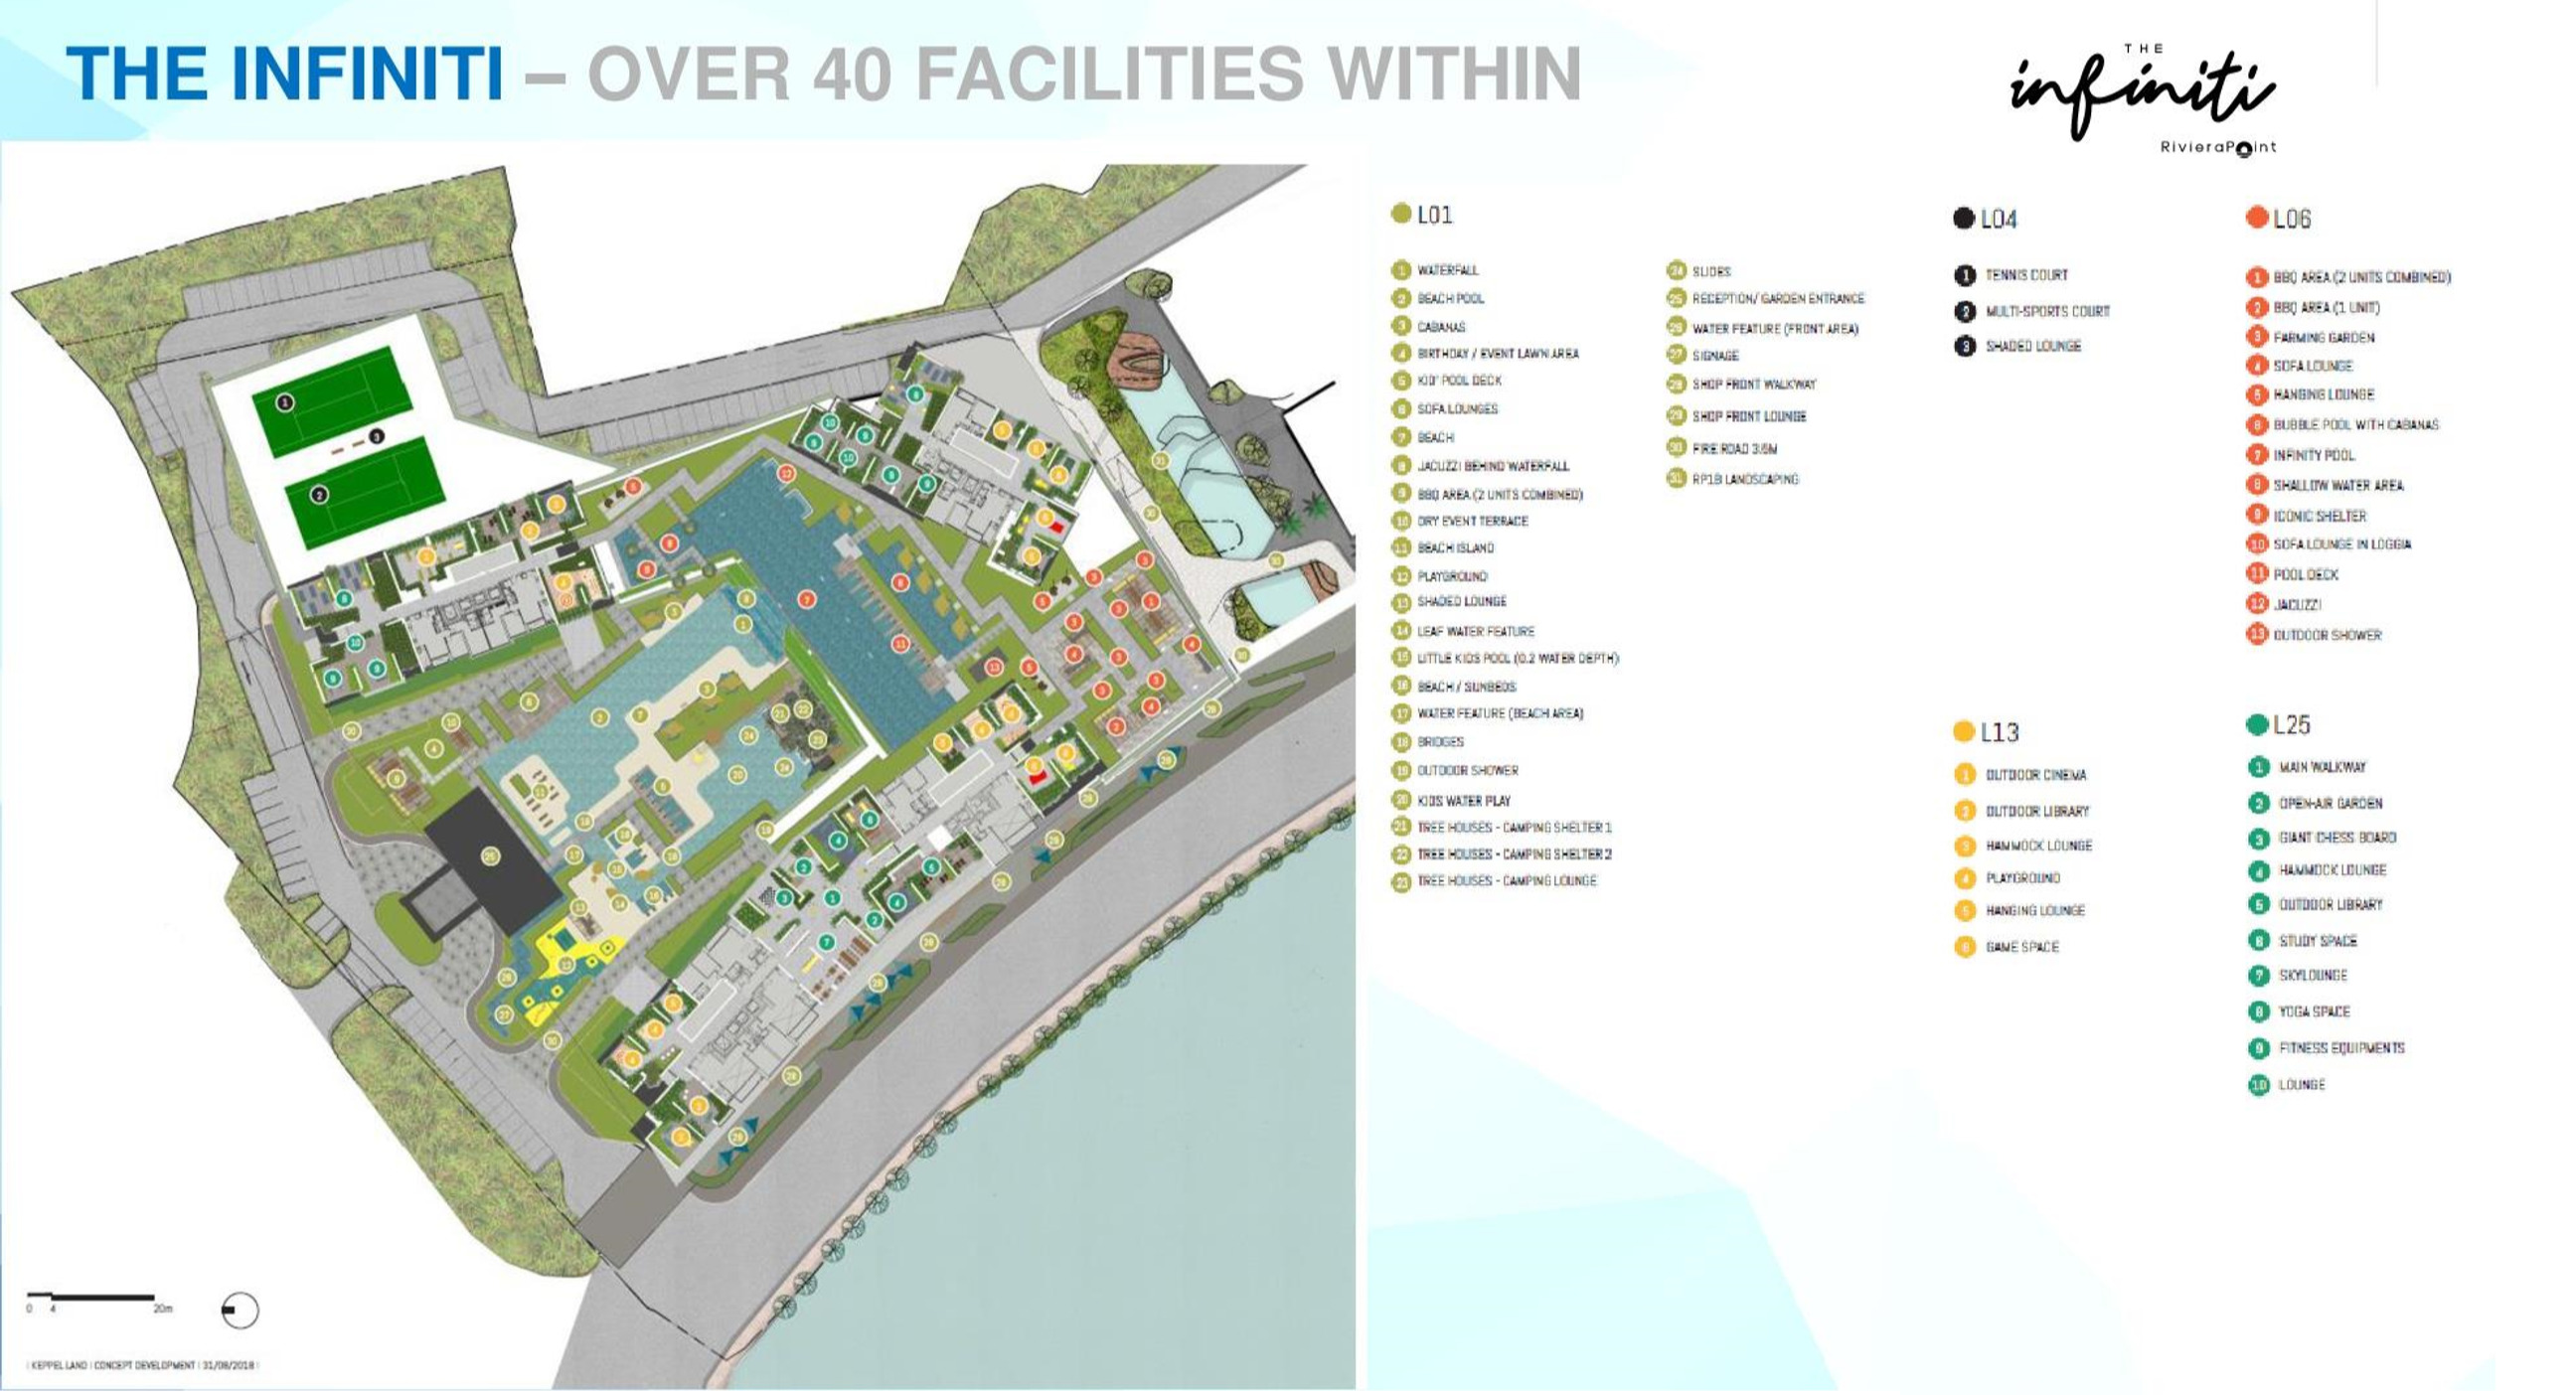 The Infiniti Site Plan